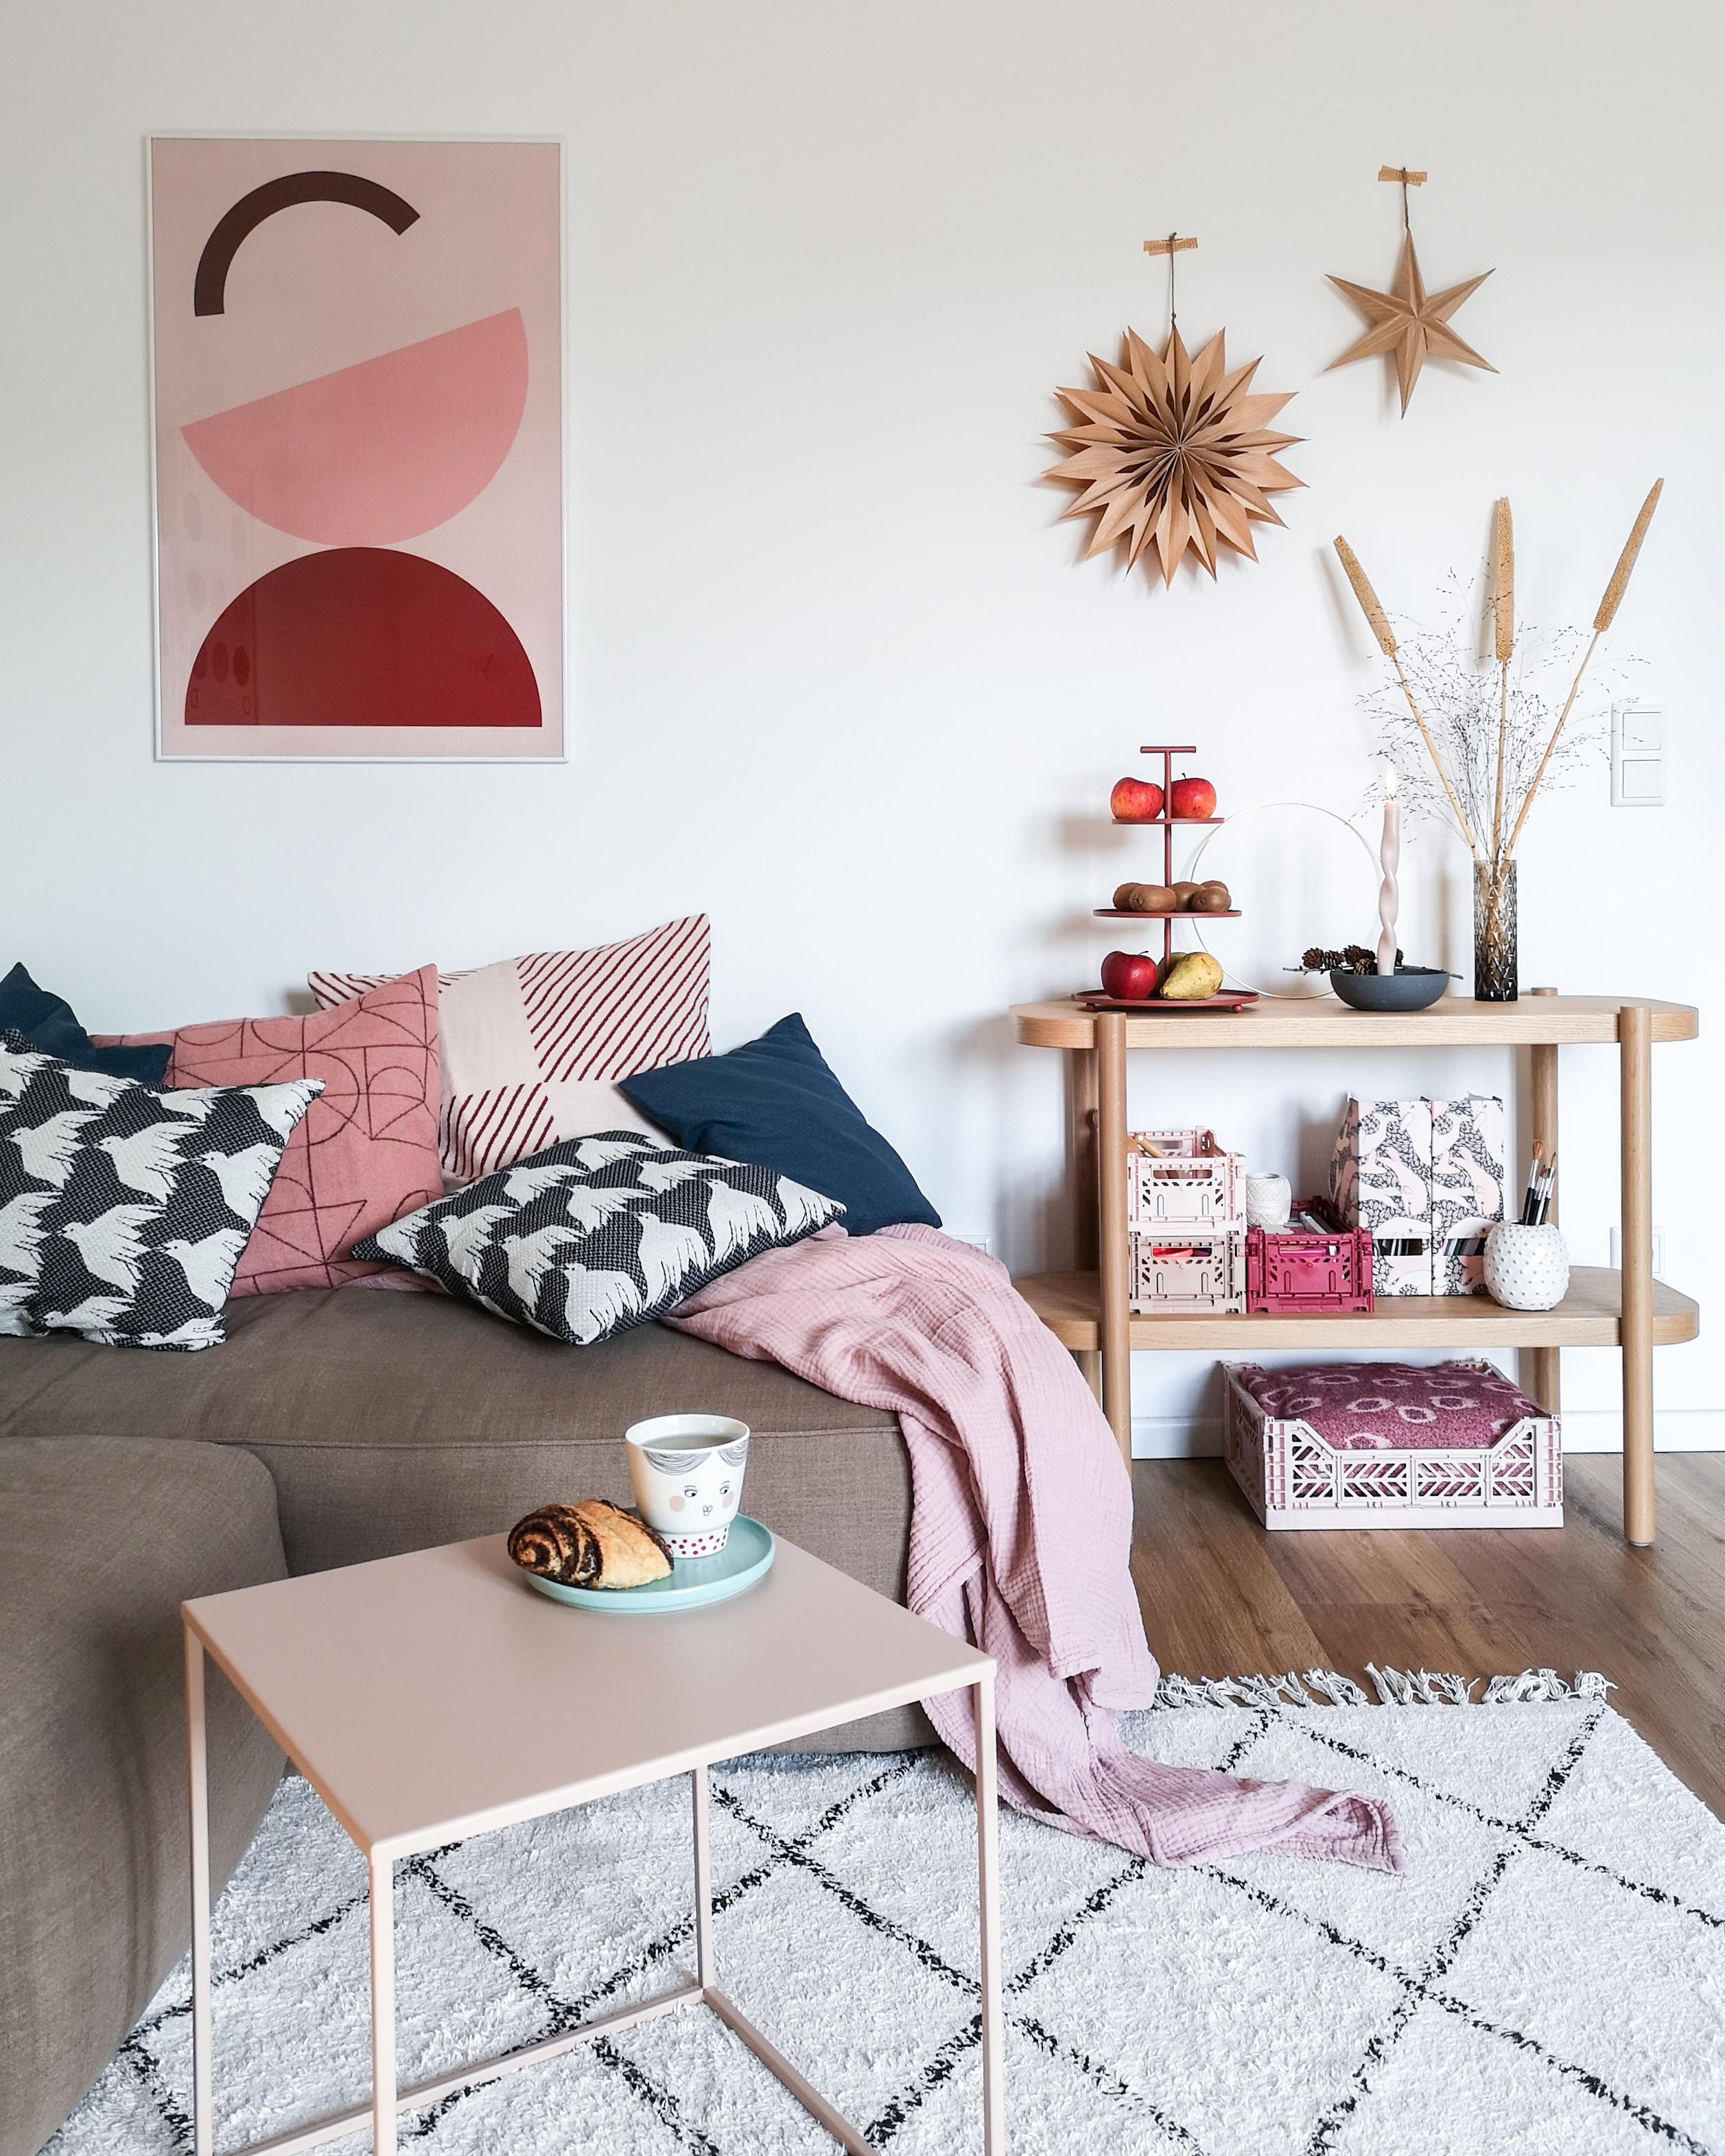 Cozy place.